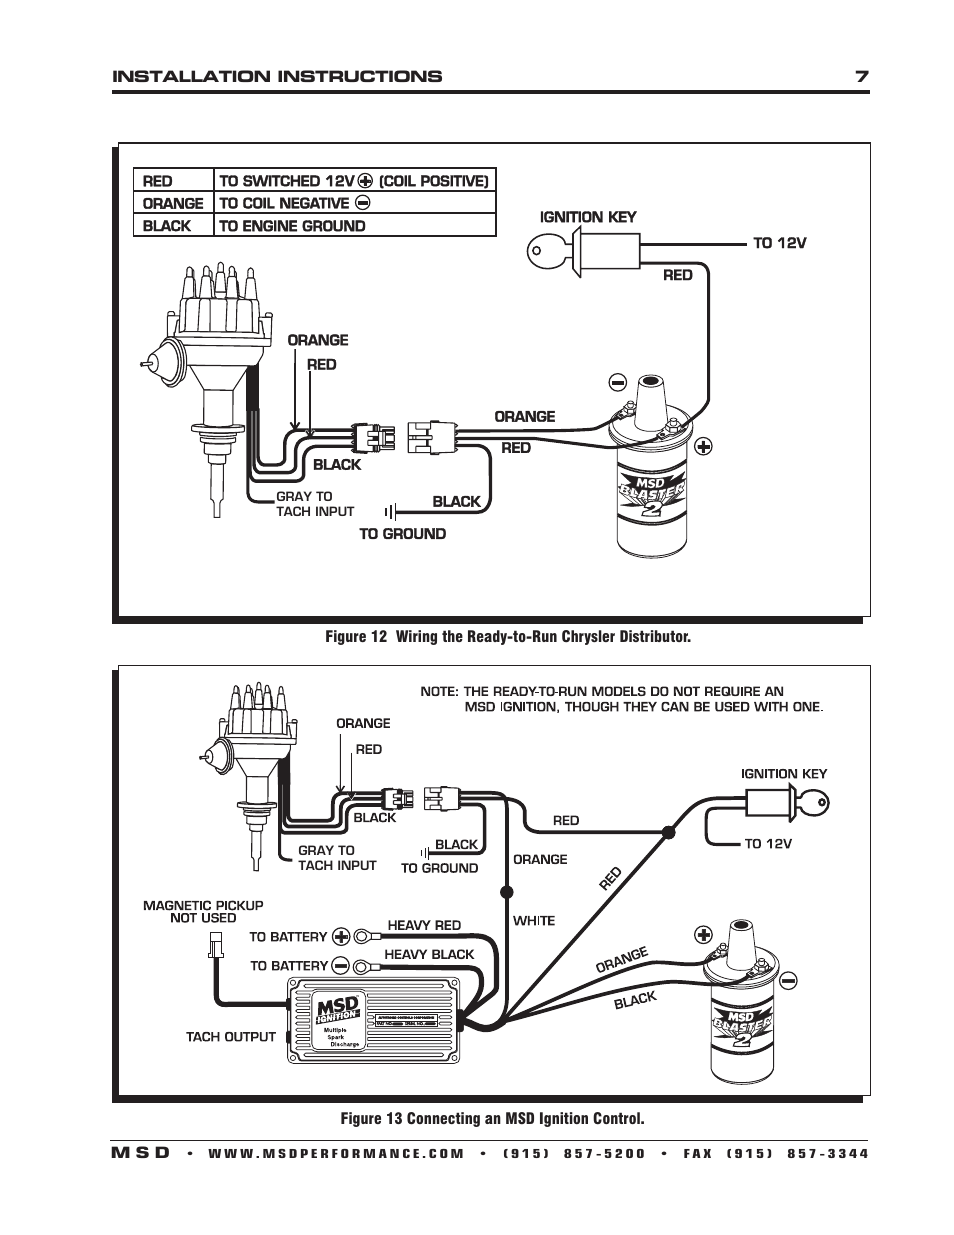 garmin wiring diagram 2006 ford f150 lights msd 8388 chrysler 318-360, ready to run distributor installation user manual | page 7 / 8 also ...